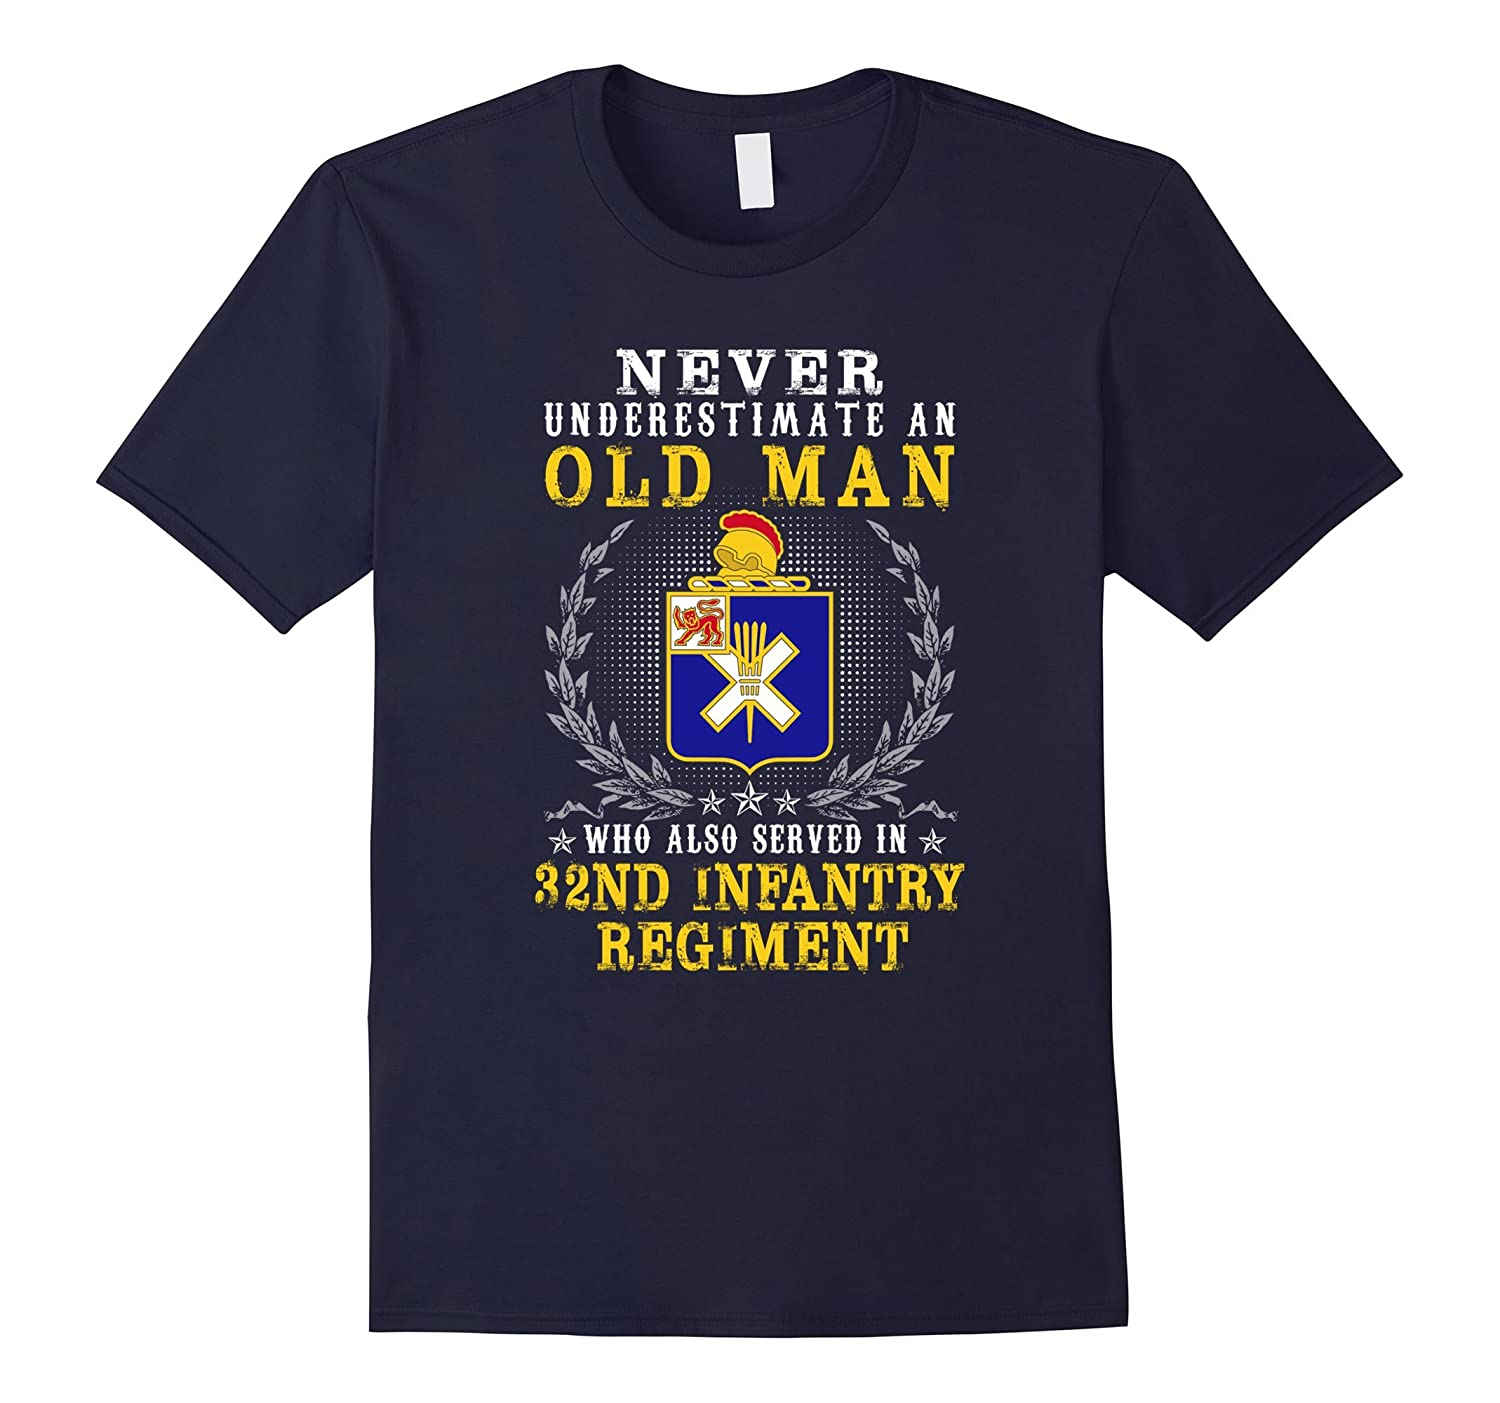 32nd infantry regiment tshirt, never underestimate an old ma-CL